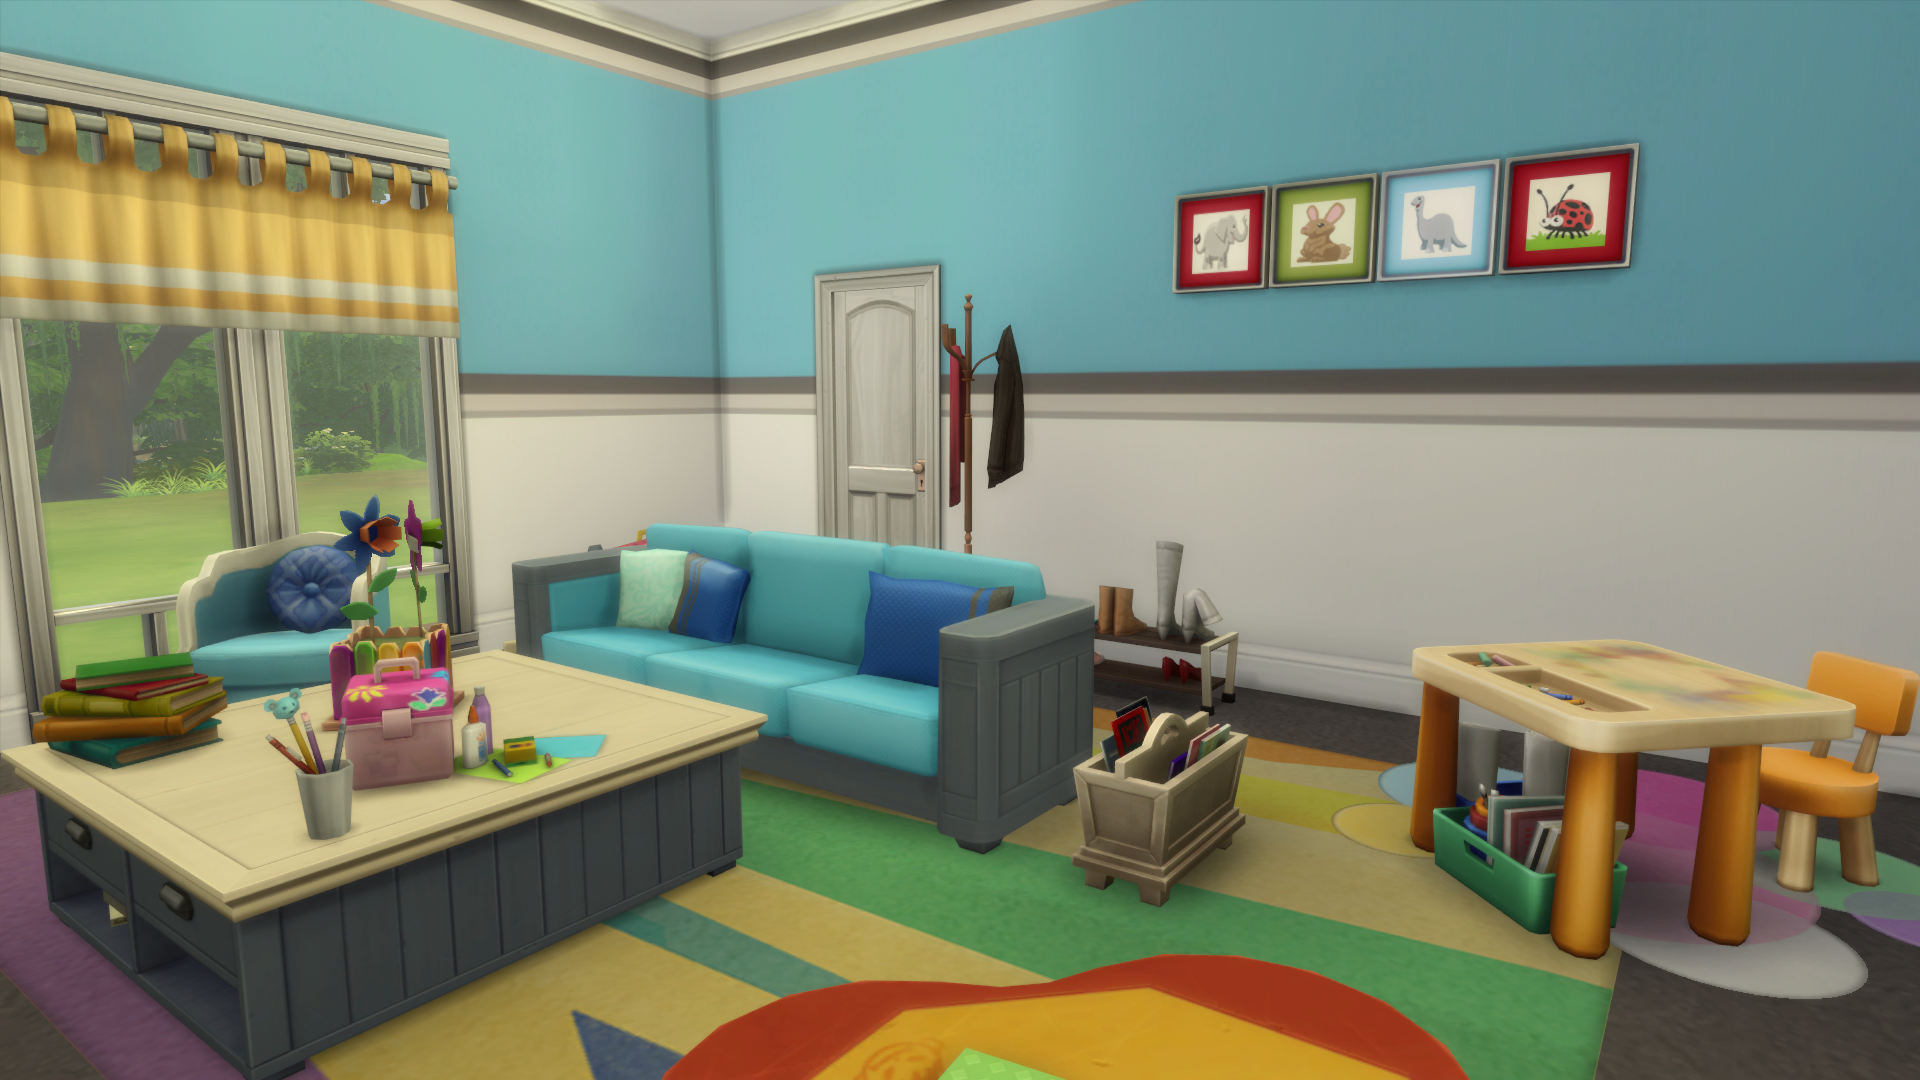 The Sims 4 Parenthood Game Pack Review - SimsVIP